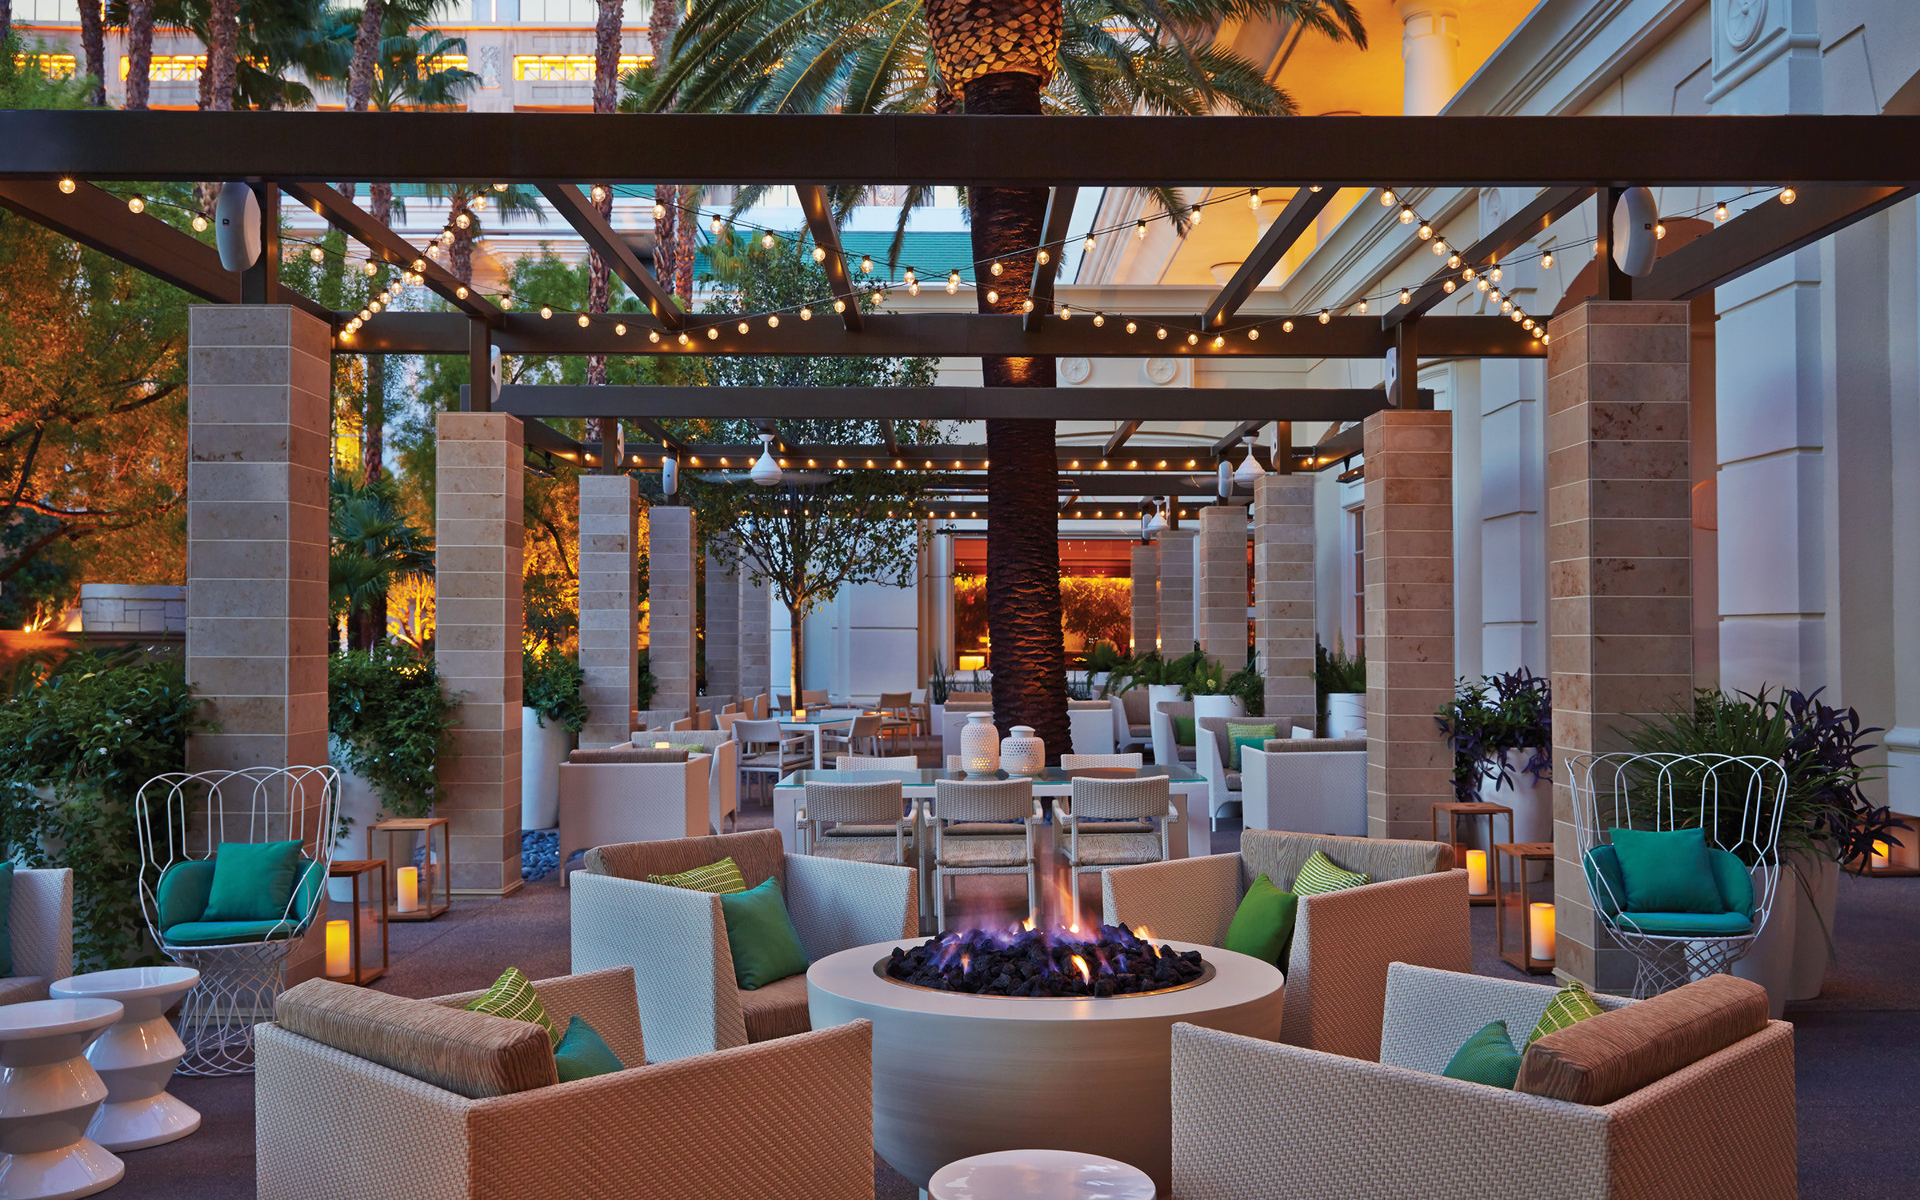 """The Four Seasons Hotel Las Vegas was the city's first hotel without a casino attached, and T+L readers took note. It received a score of 91.040, and one reader called it """"a nice oasis from the din of Vegas when you need a vacation from the vacation."""" Another reader commented that it's great for business travelers. Guests can expect all the usual Four Seasons touches—elegantly decorated rooms with marble baths, attentive service, and great dining options."""